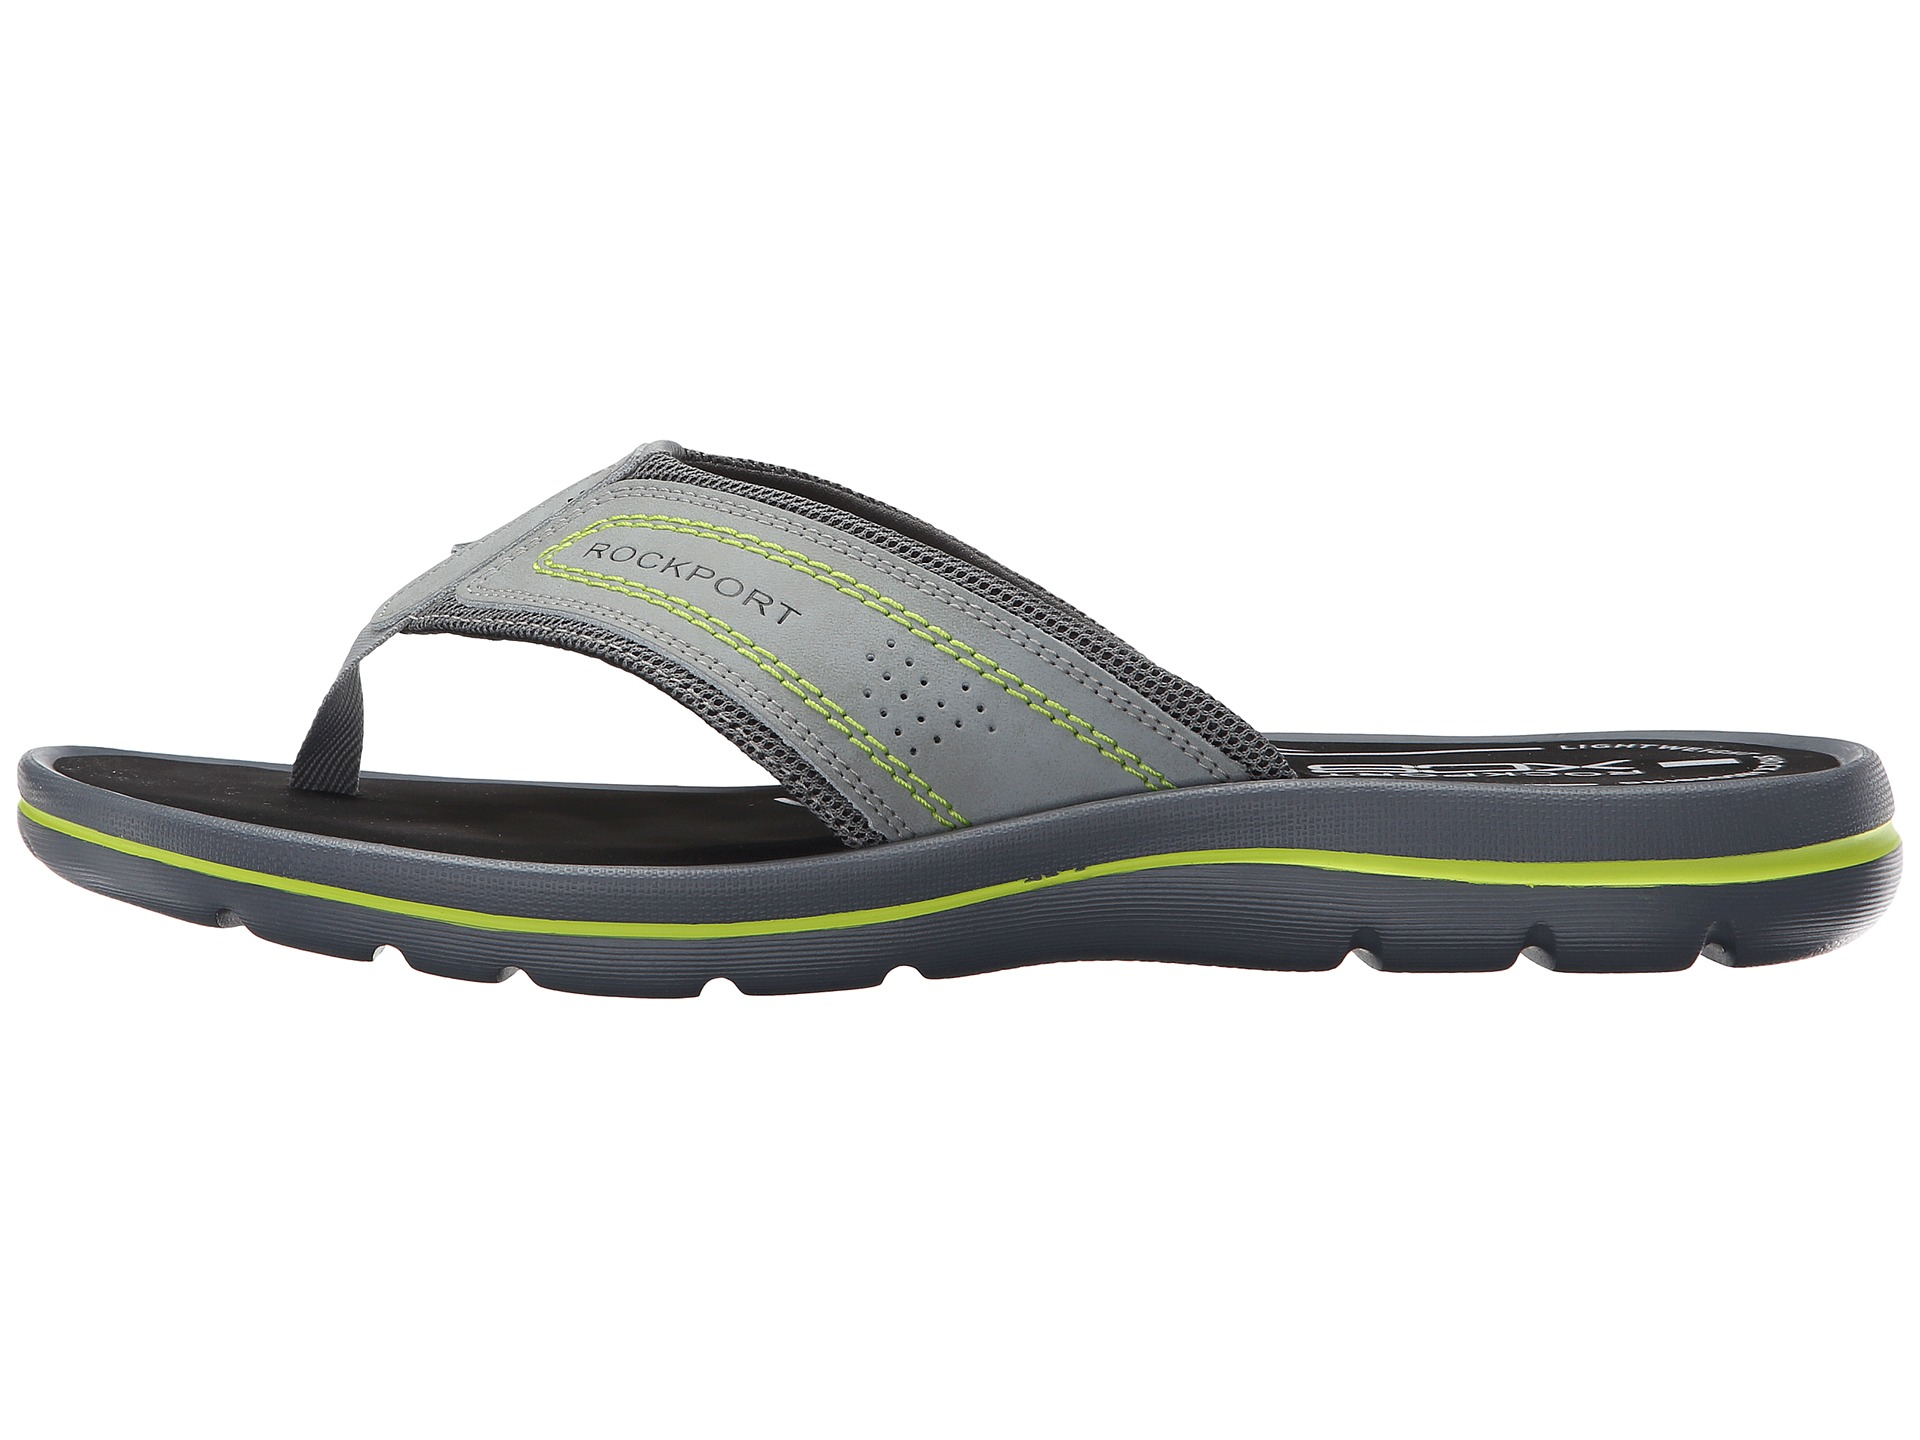 a470b6eab5f9 Lyst - Rockport Get Your Kicks Sandals Thong in Green for Men